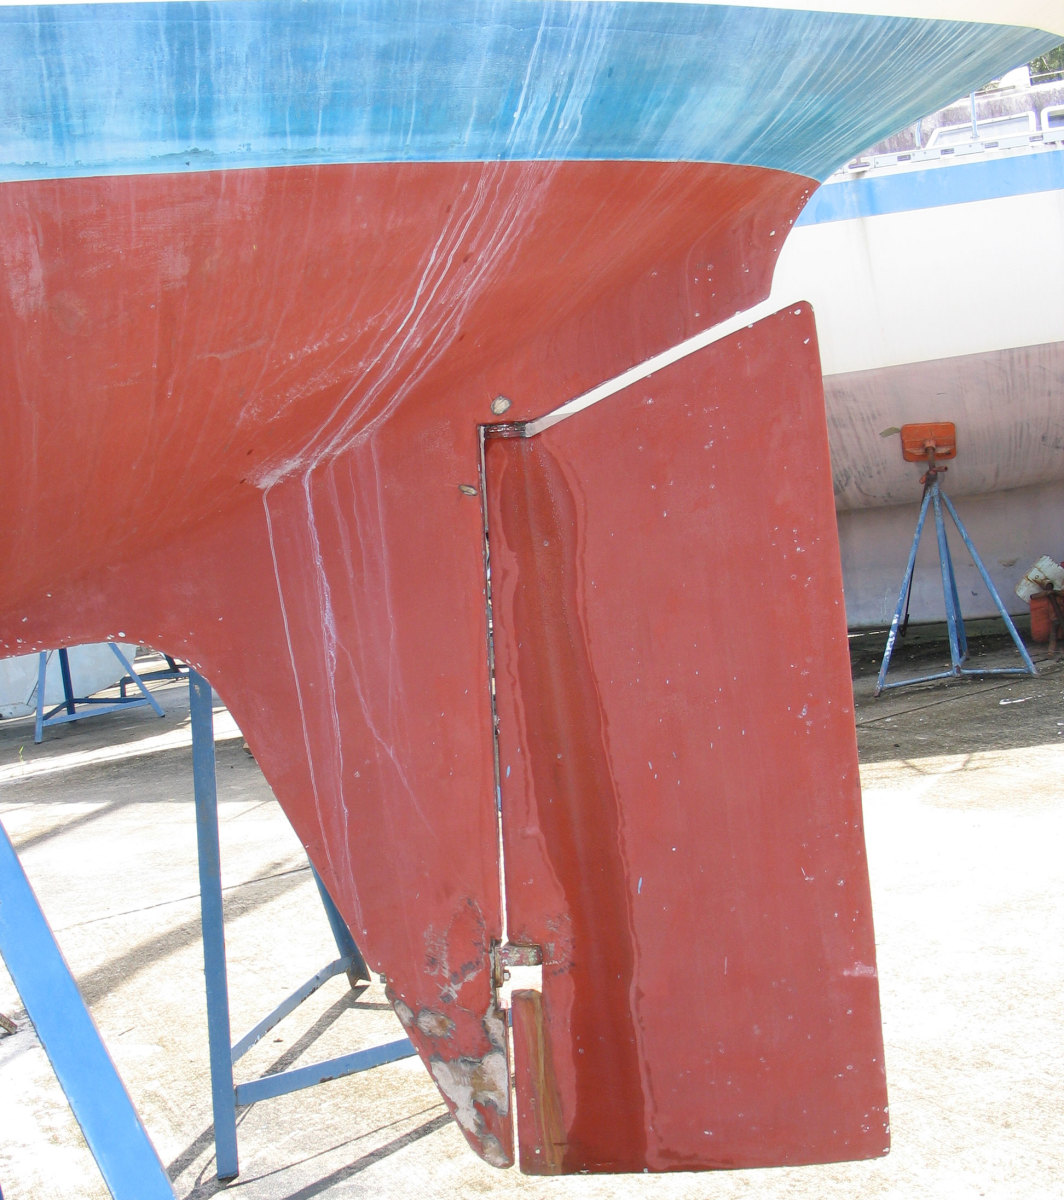 Water has leaked from the rudder tube, which does not mean the rudder itself is wet inside